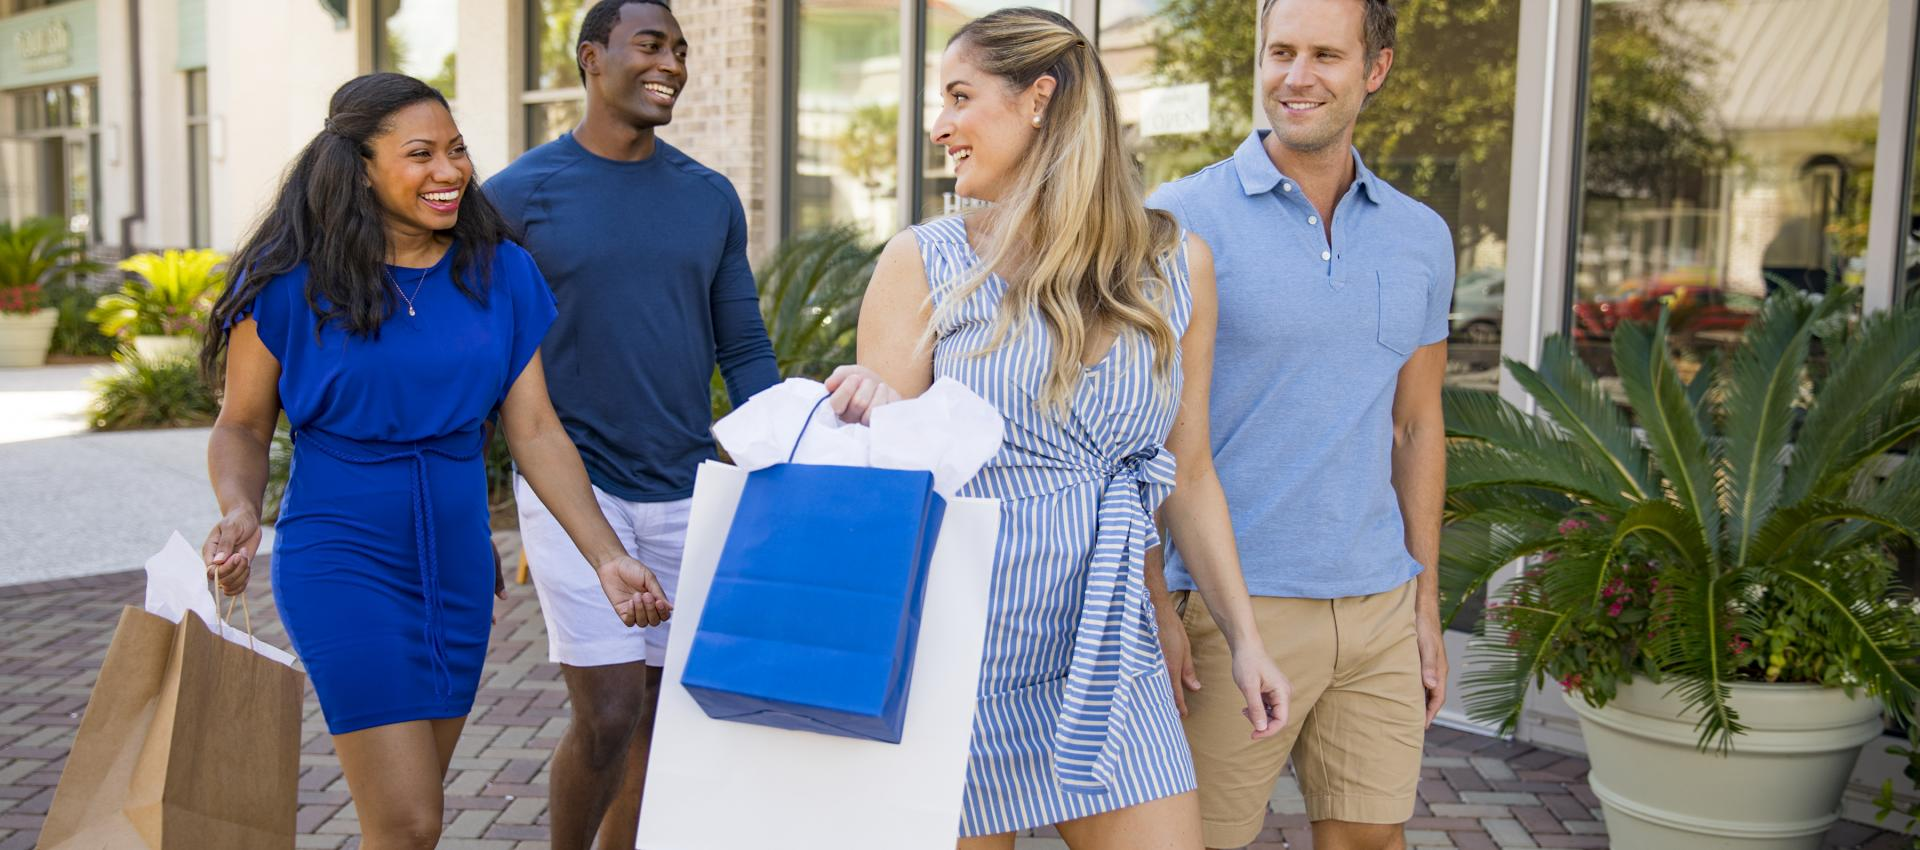 Two men and two women shop with large shopping bags